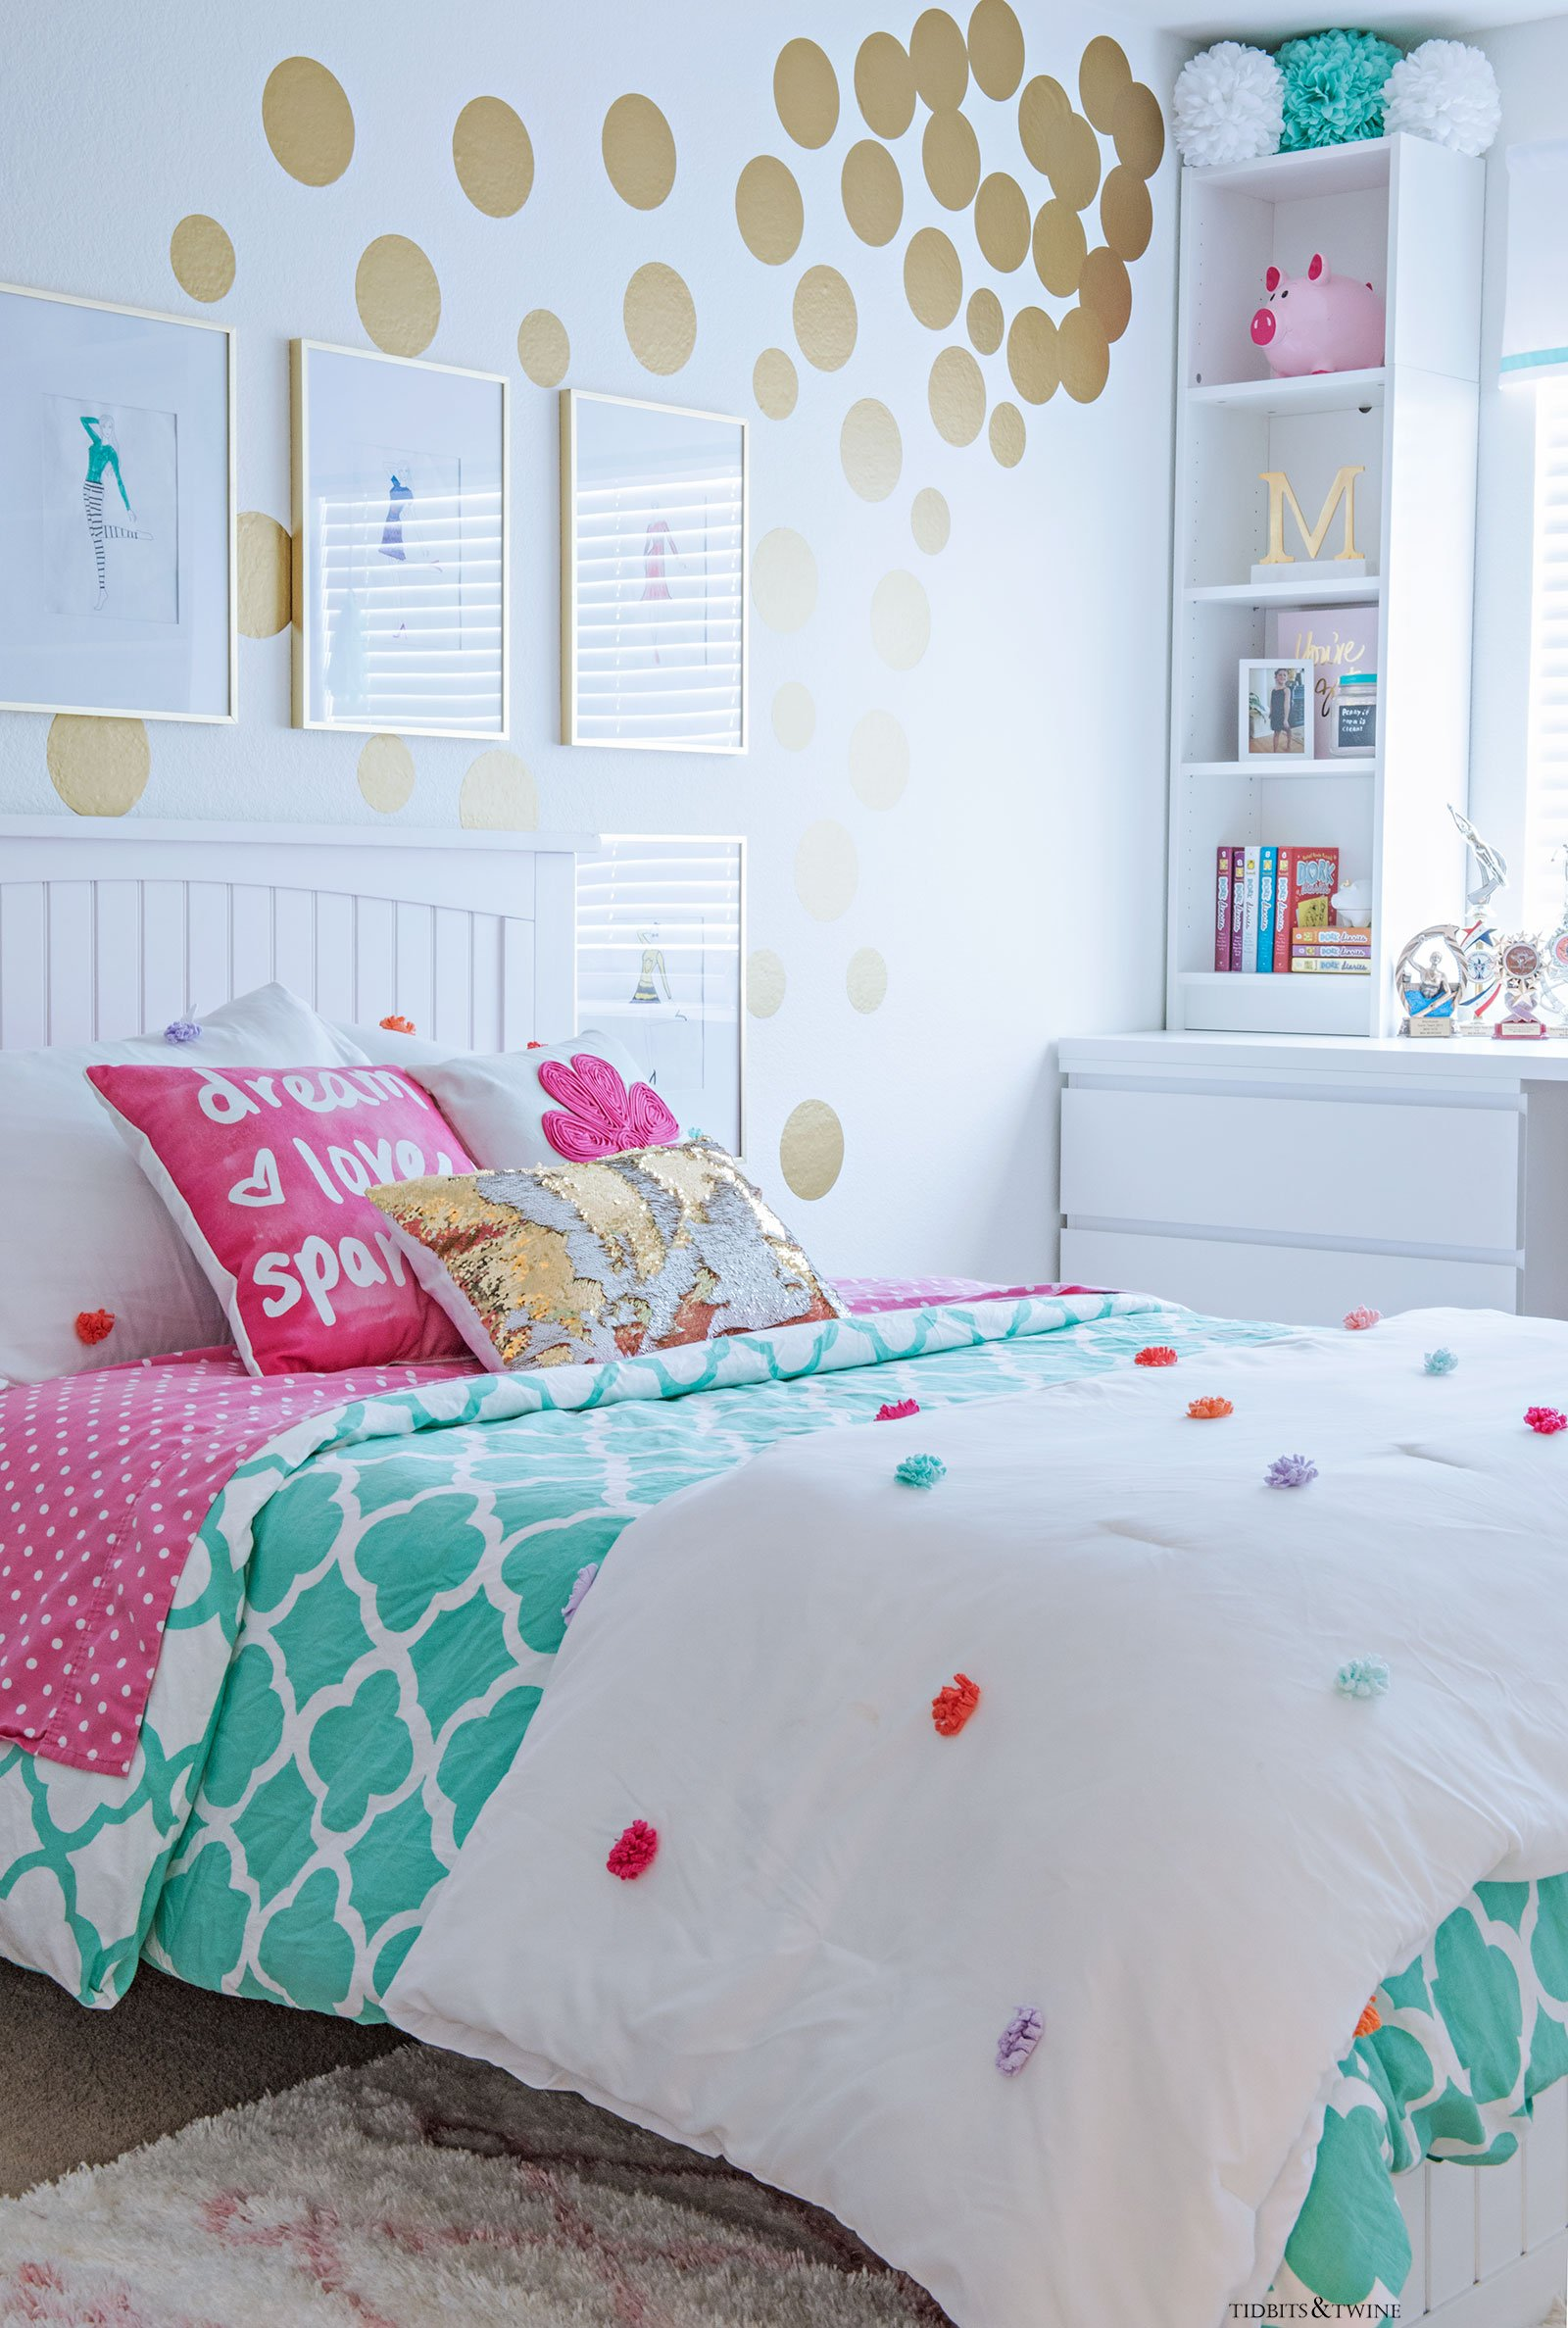 Tween Girls Bedroom Makeover REVEAL TIDBITSTWINE - Tween girl bedroom decorating ideas